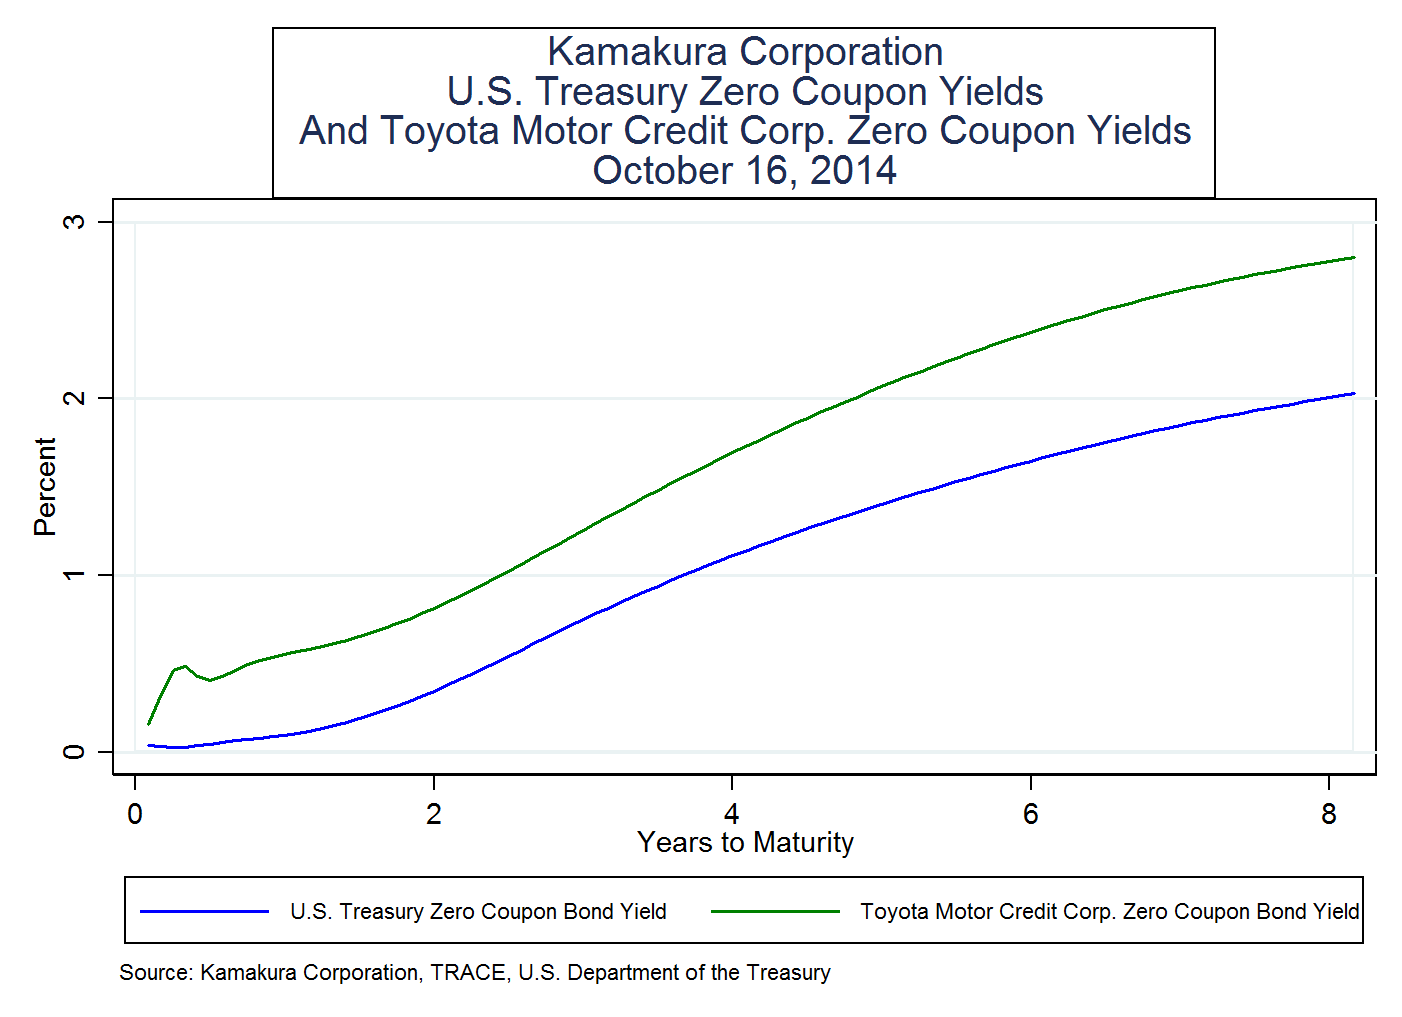 toyota motor credit corp. zero coupon bond yields and credit spreads